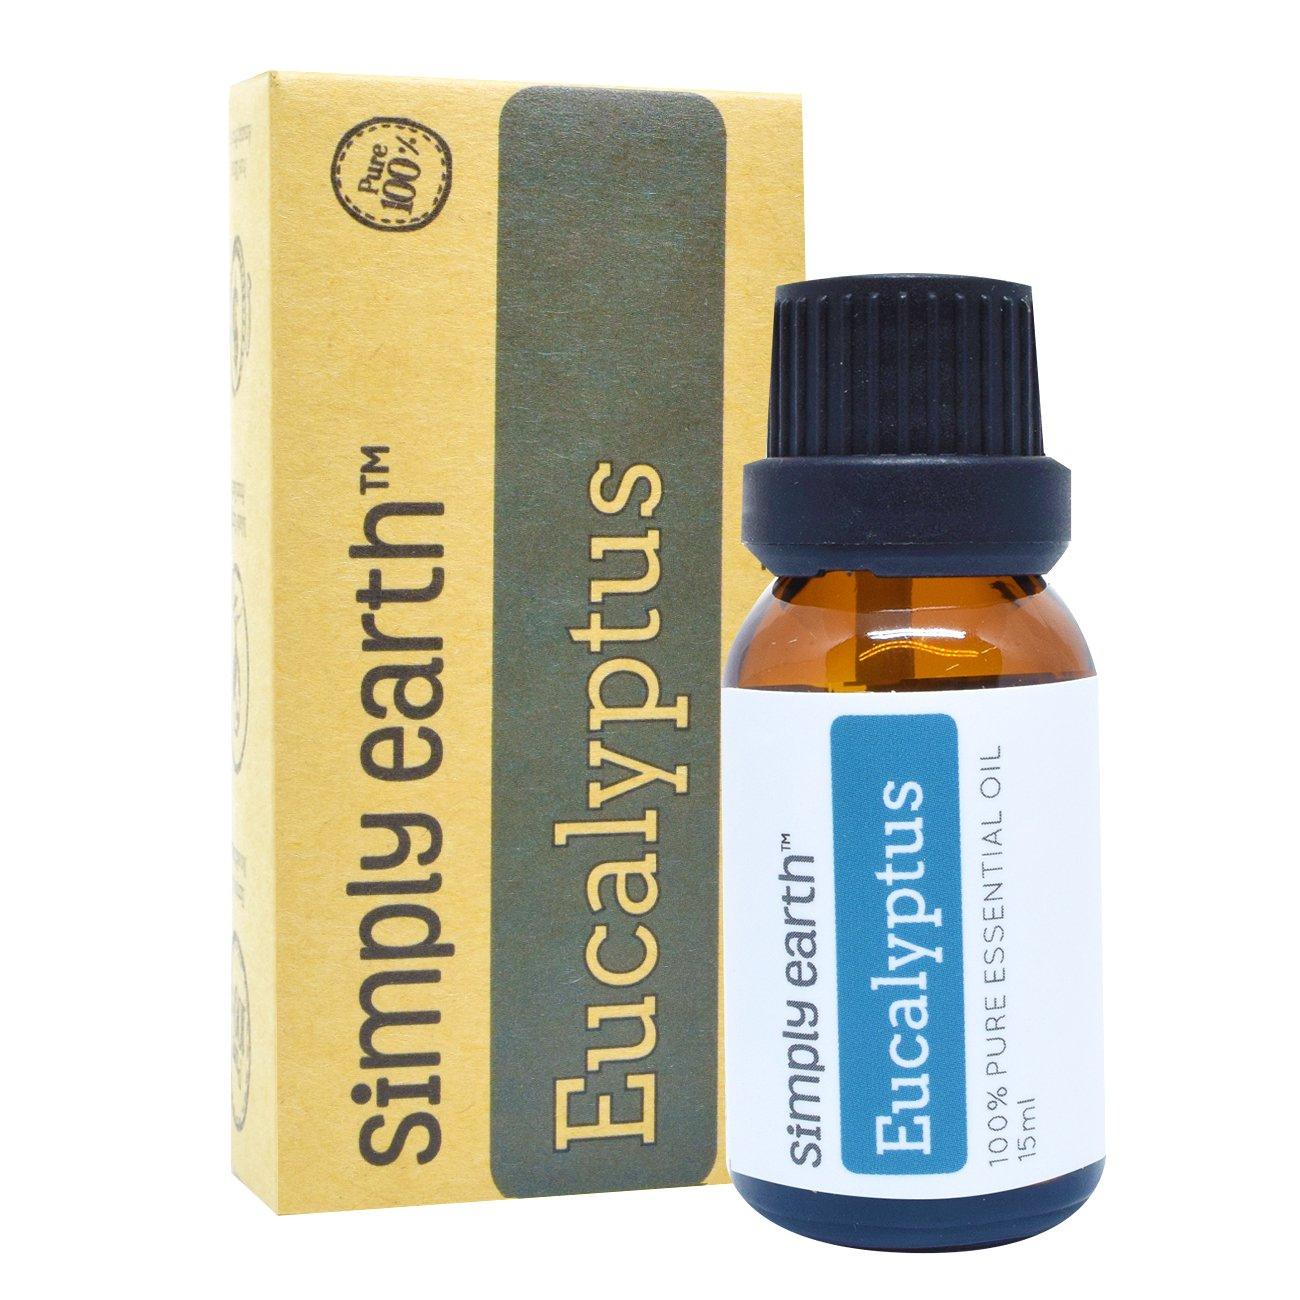 Simply Earth Eucalyptus Essential Oil by 15 ml, 100% Pure Therapeutic Grade